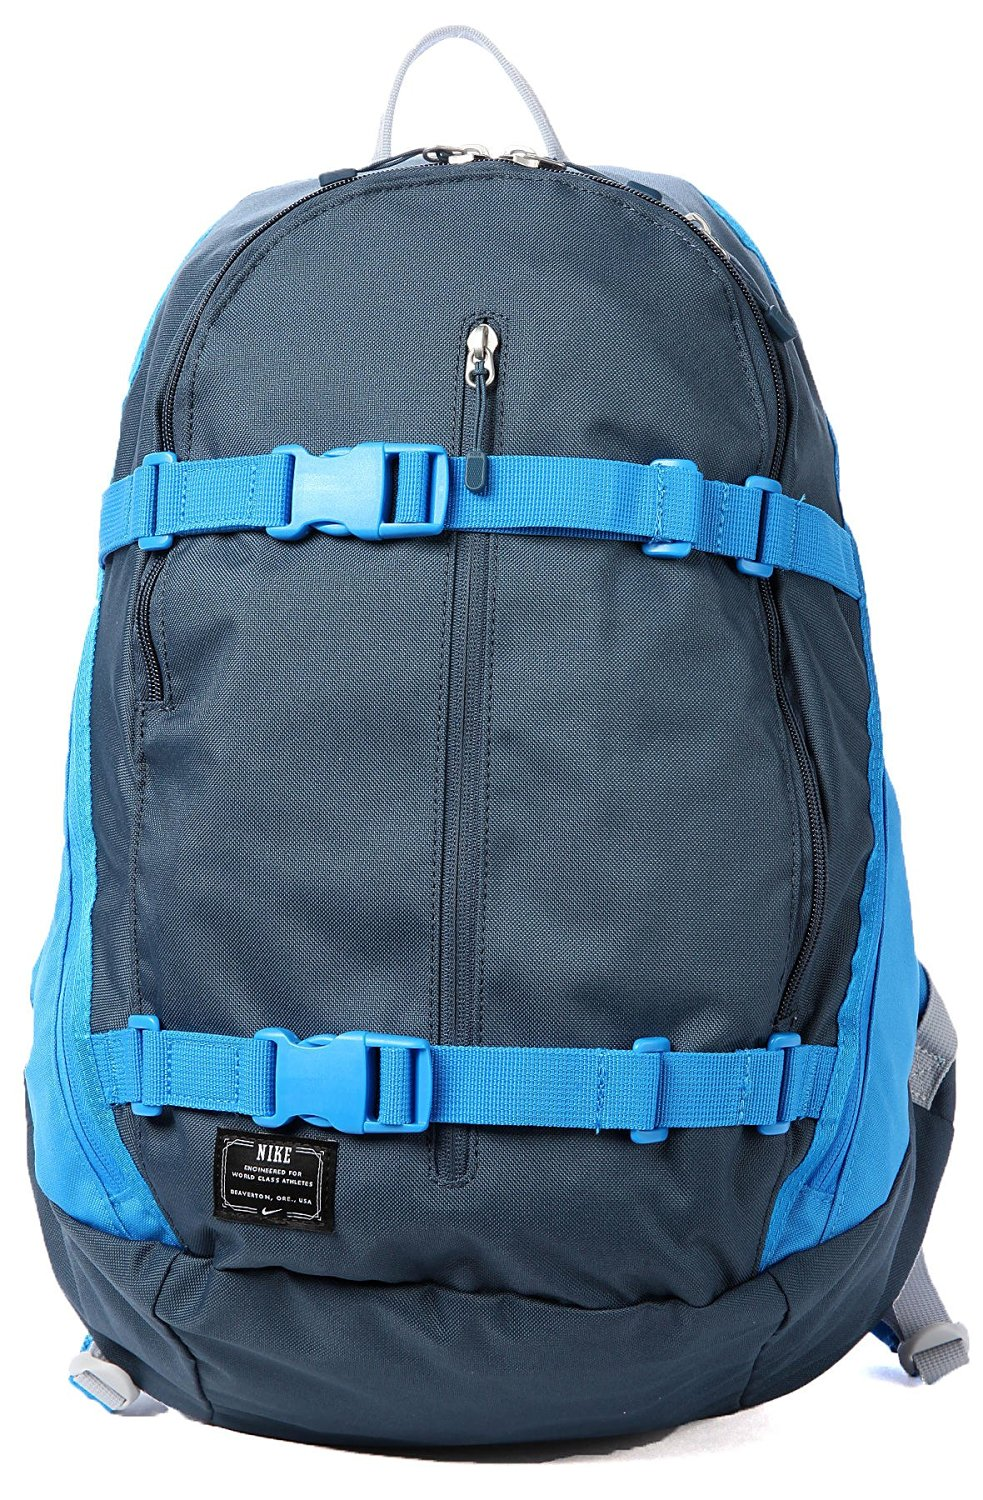 1eececb7a05 Buy New Nike KD Fast Break Backpack in Cheap Price on Alibaba.com